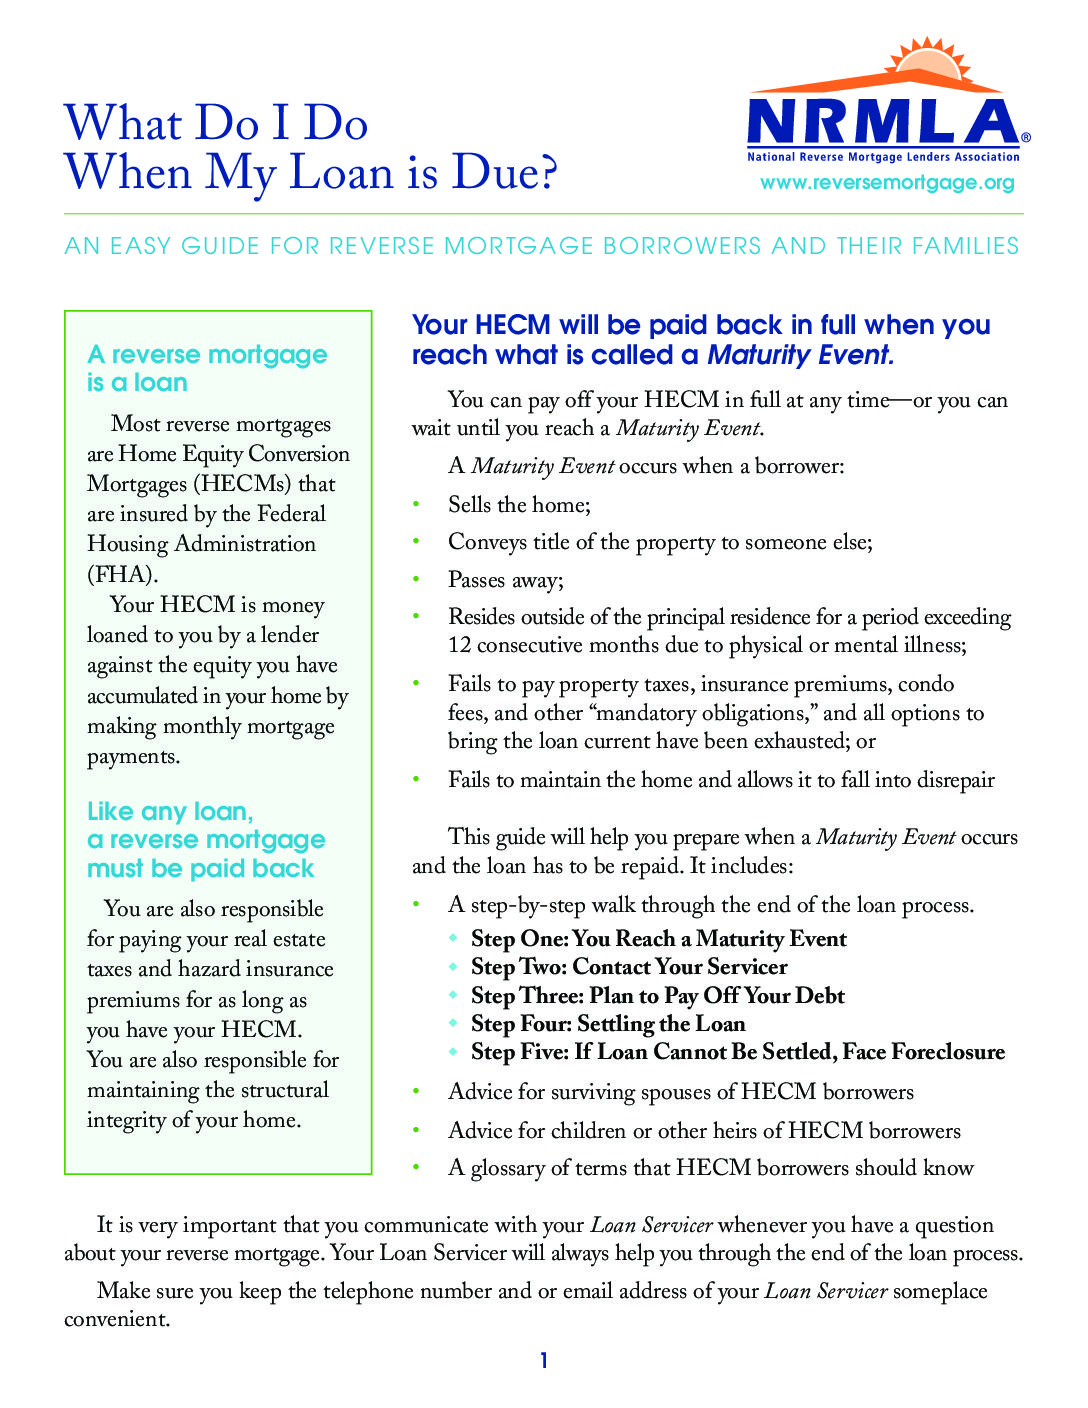 What Do I Do When My Loan Is Due Reverse Mortgage